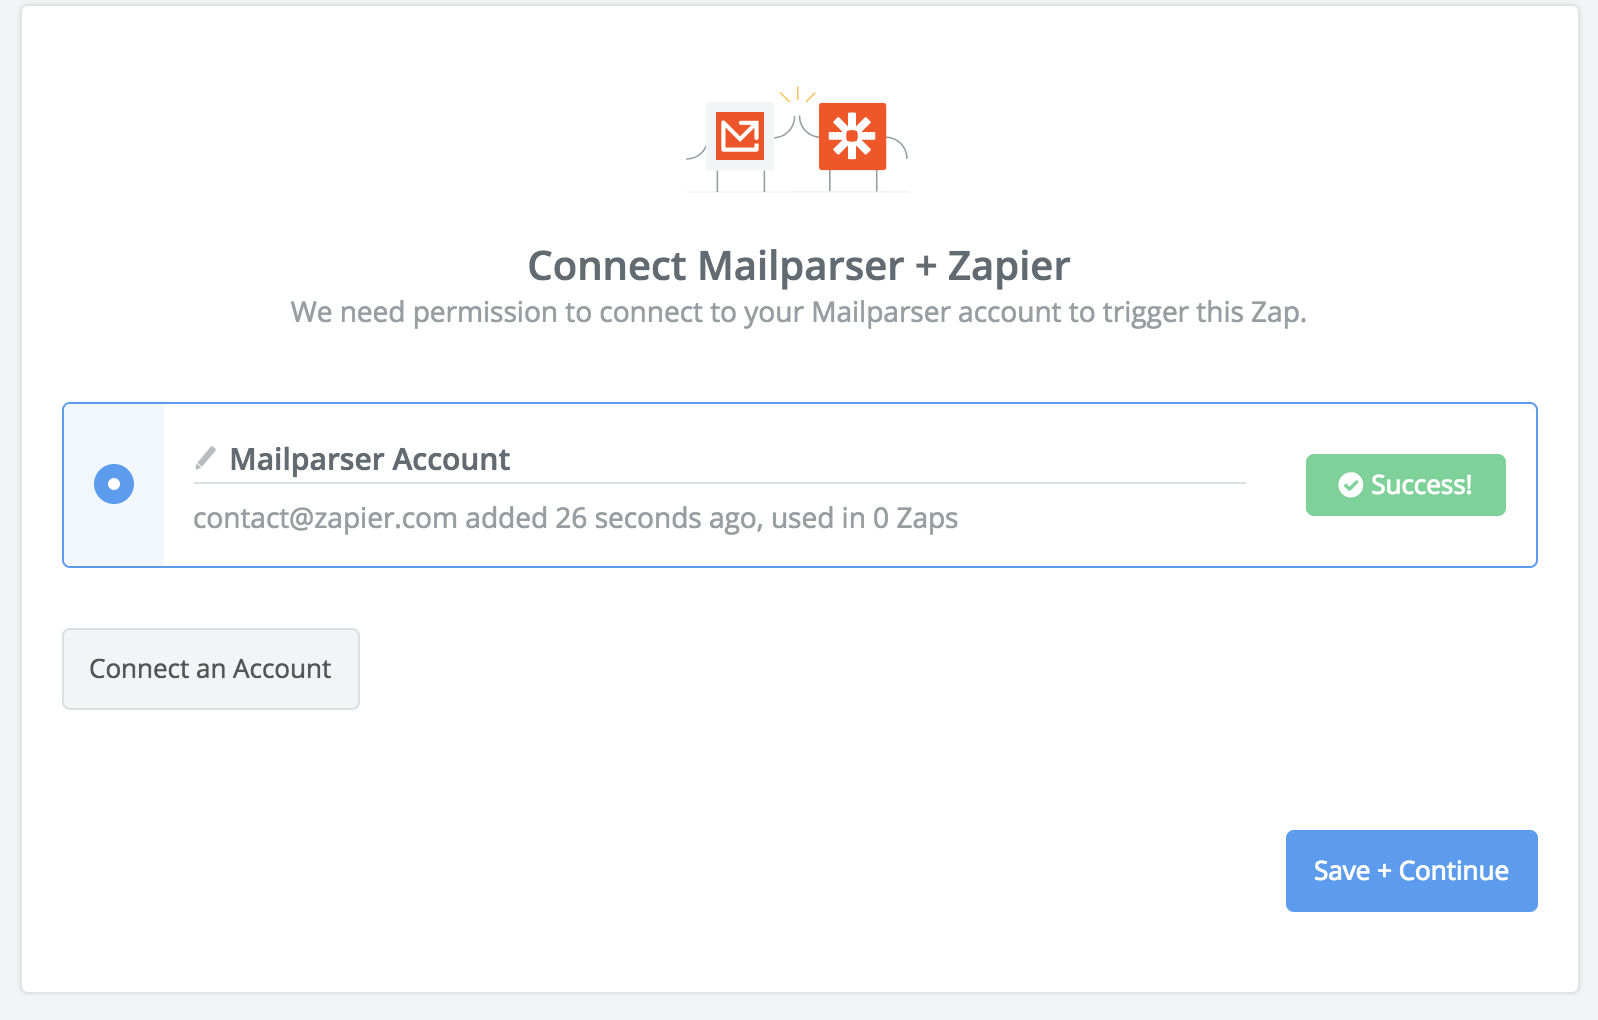 Successful MailParser account connection